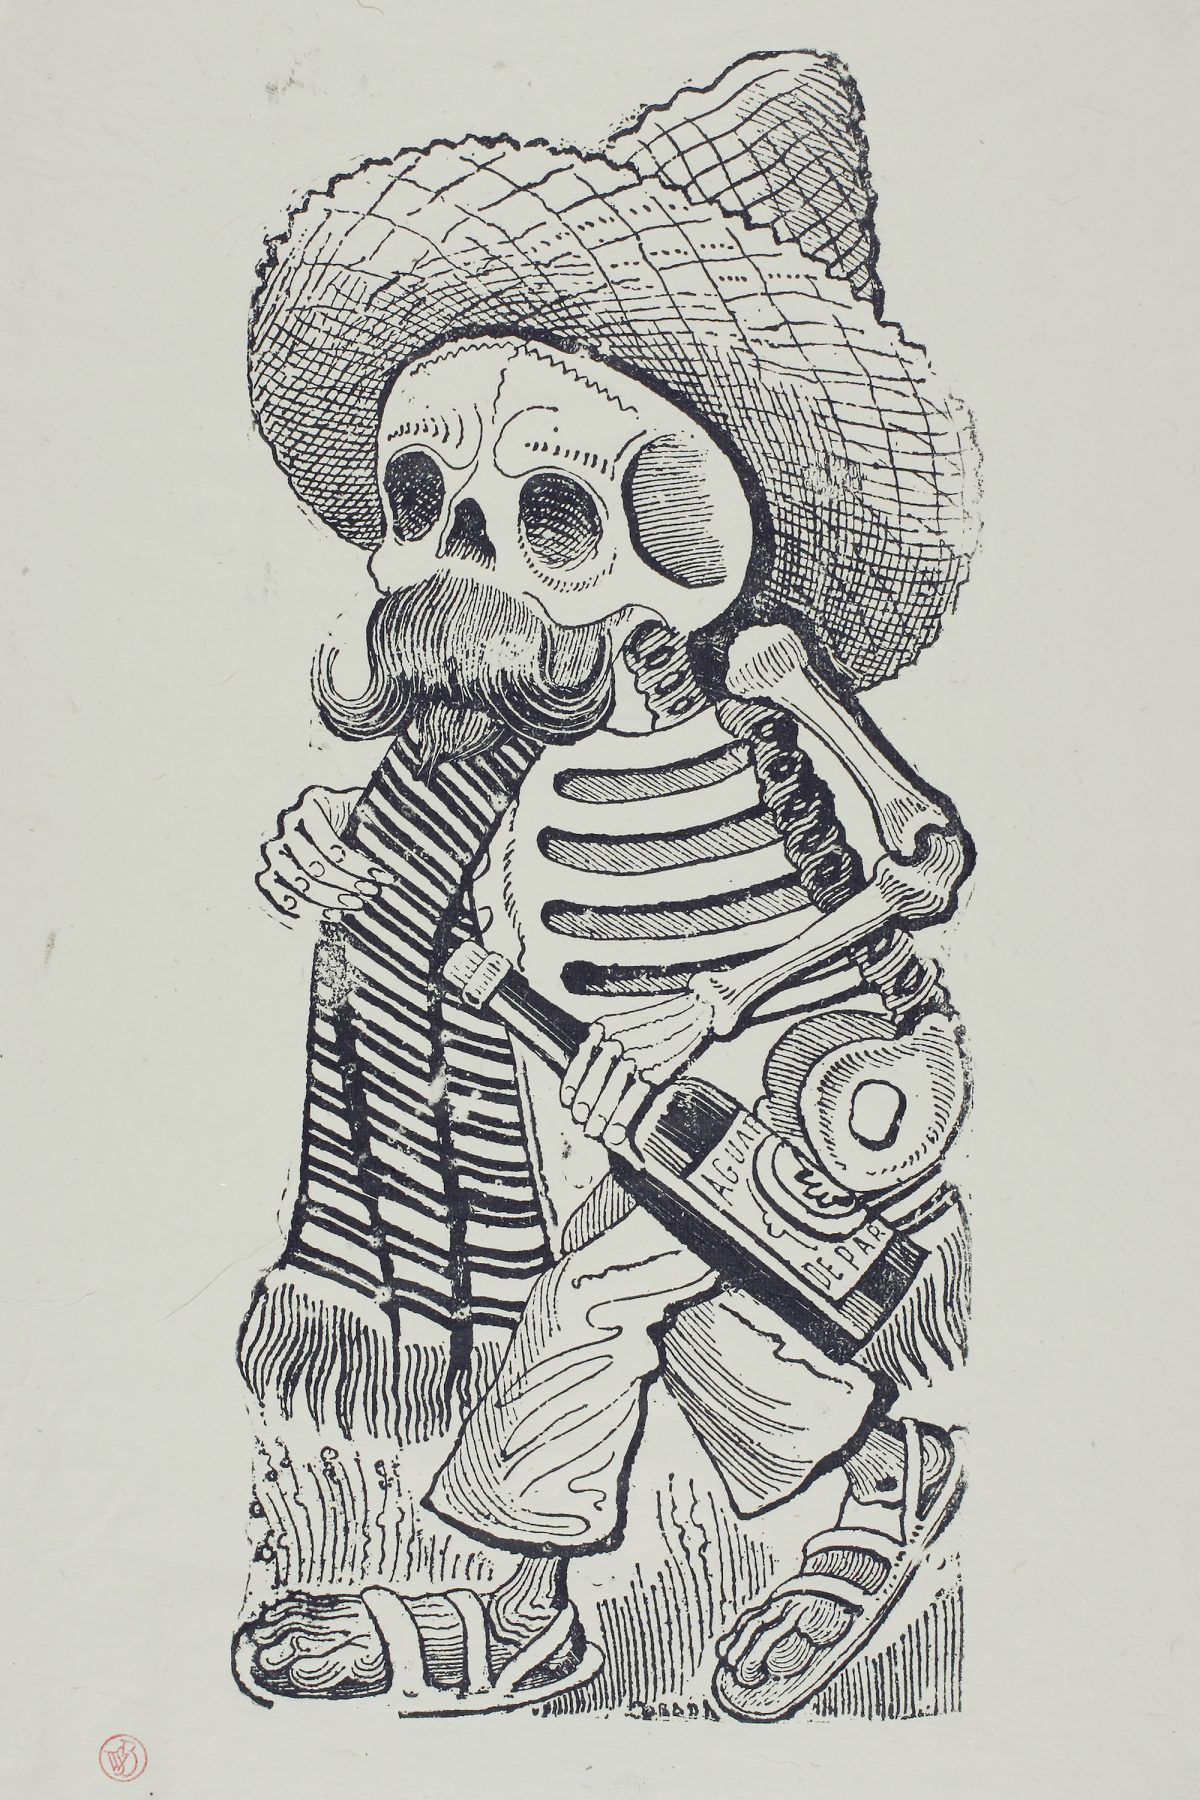 Calavera of Francisco Madero by Jos' Guadalupe Posada. Buy here.